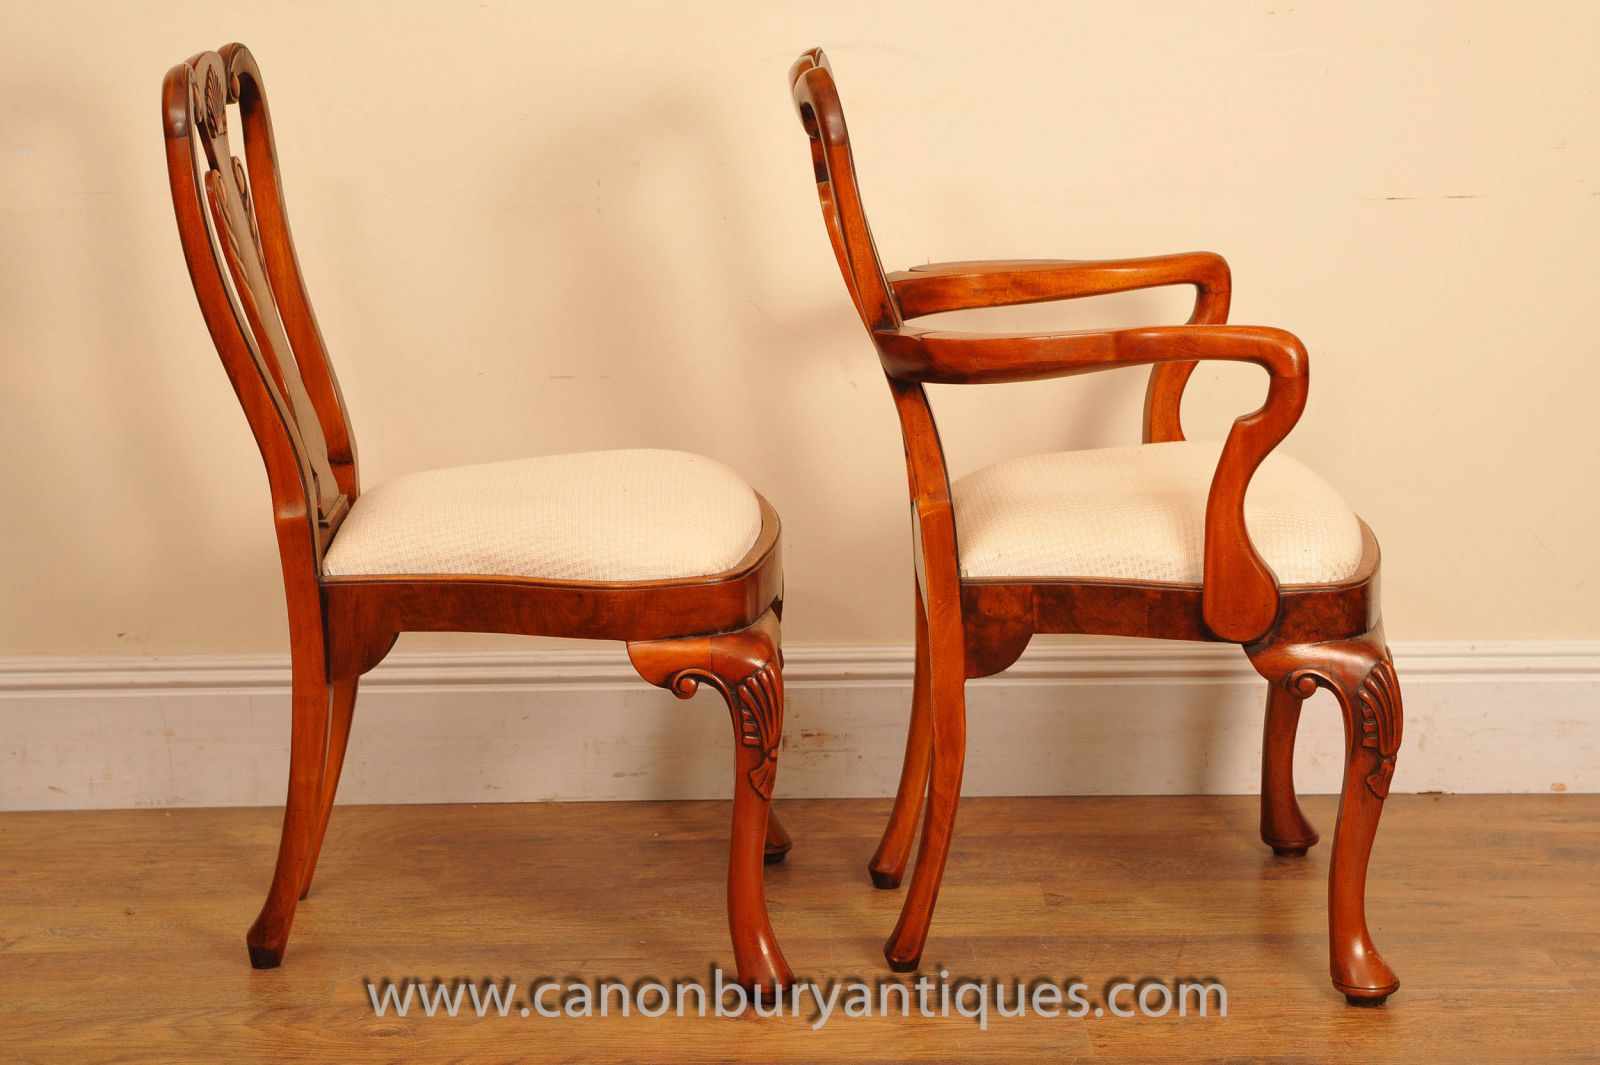 Large range of antique dining chairs